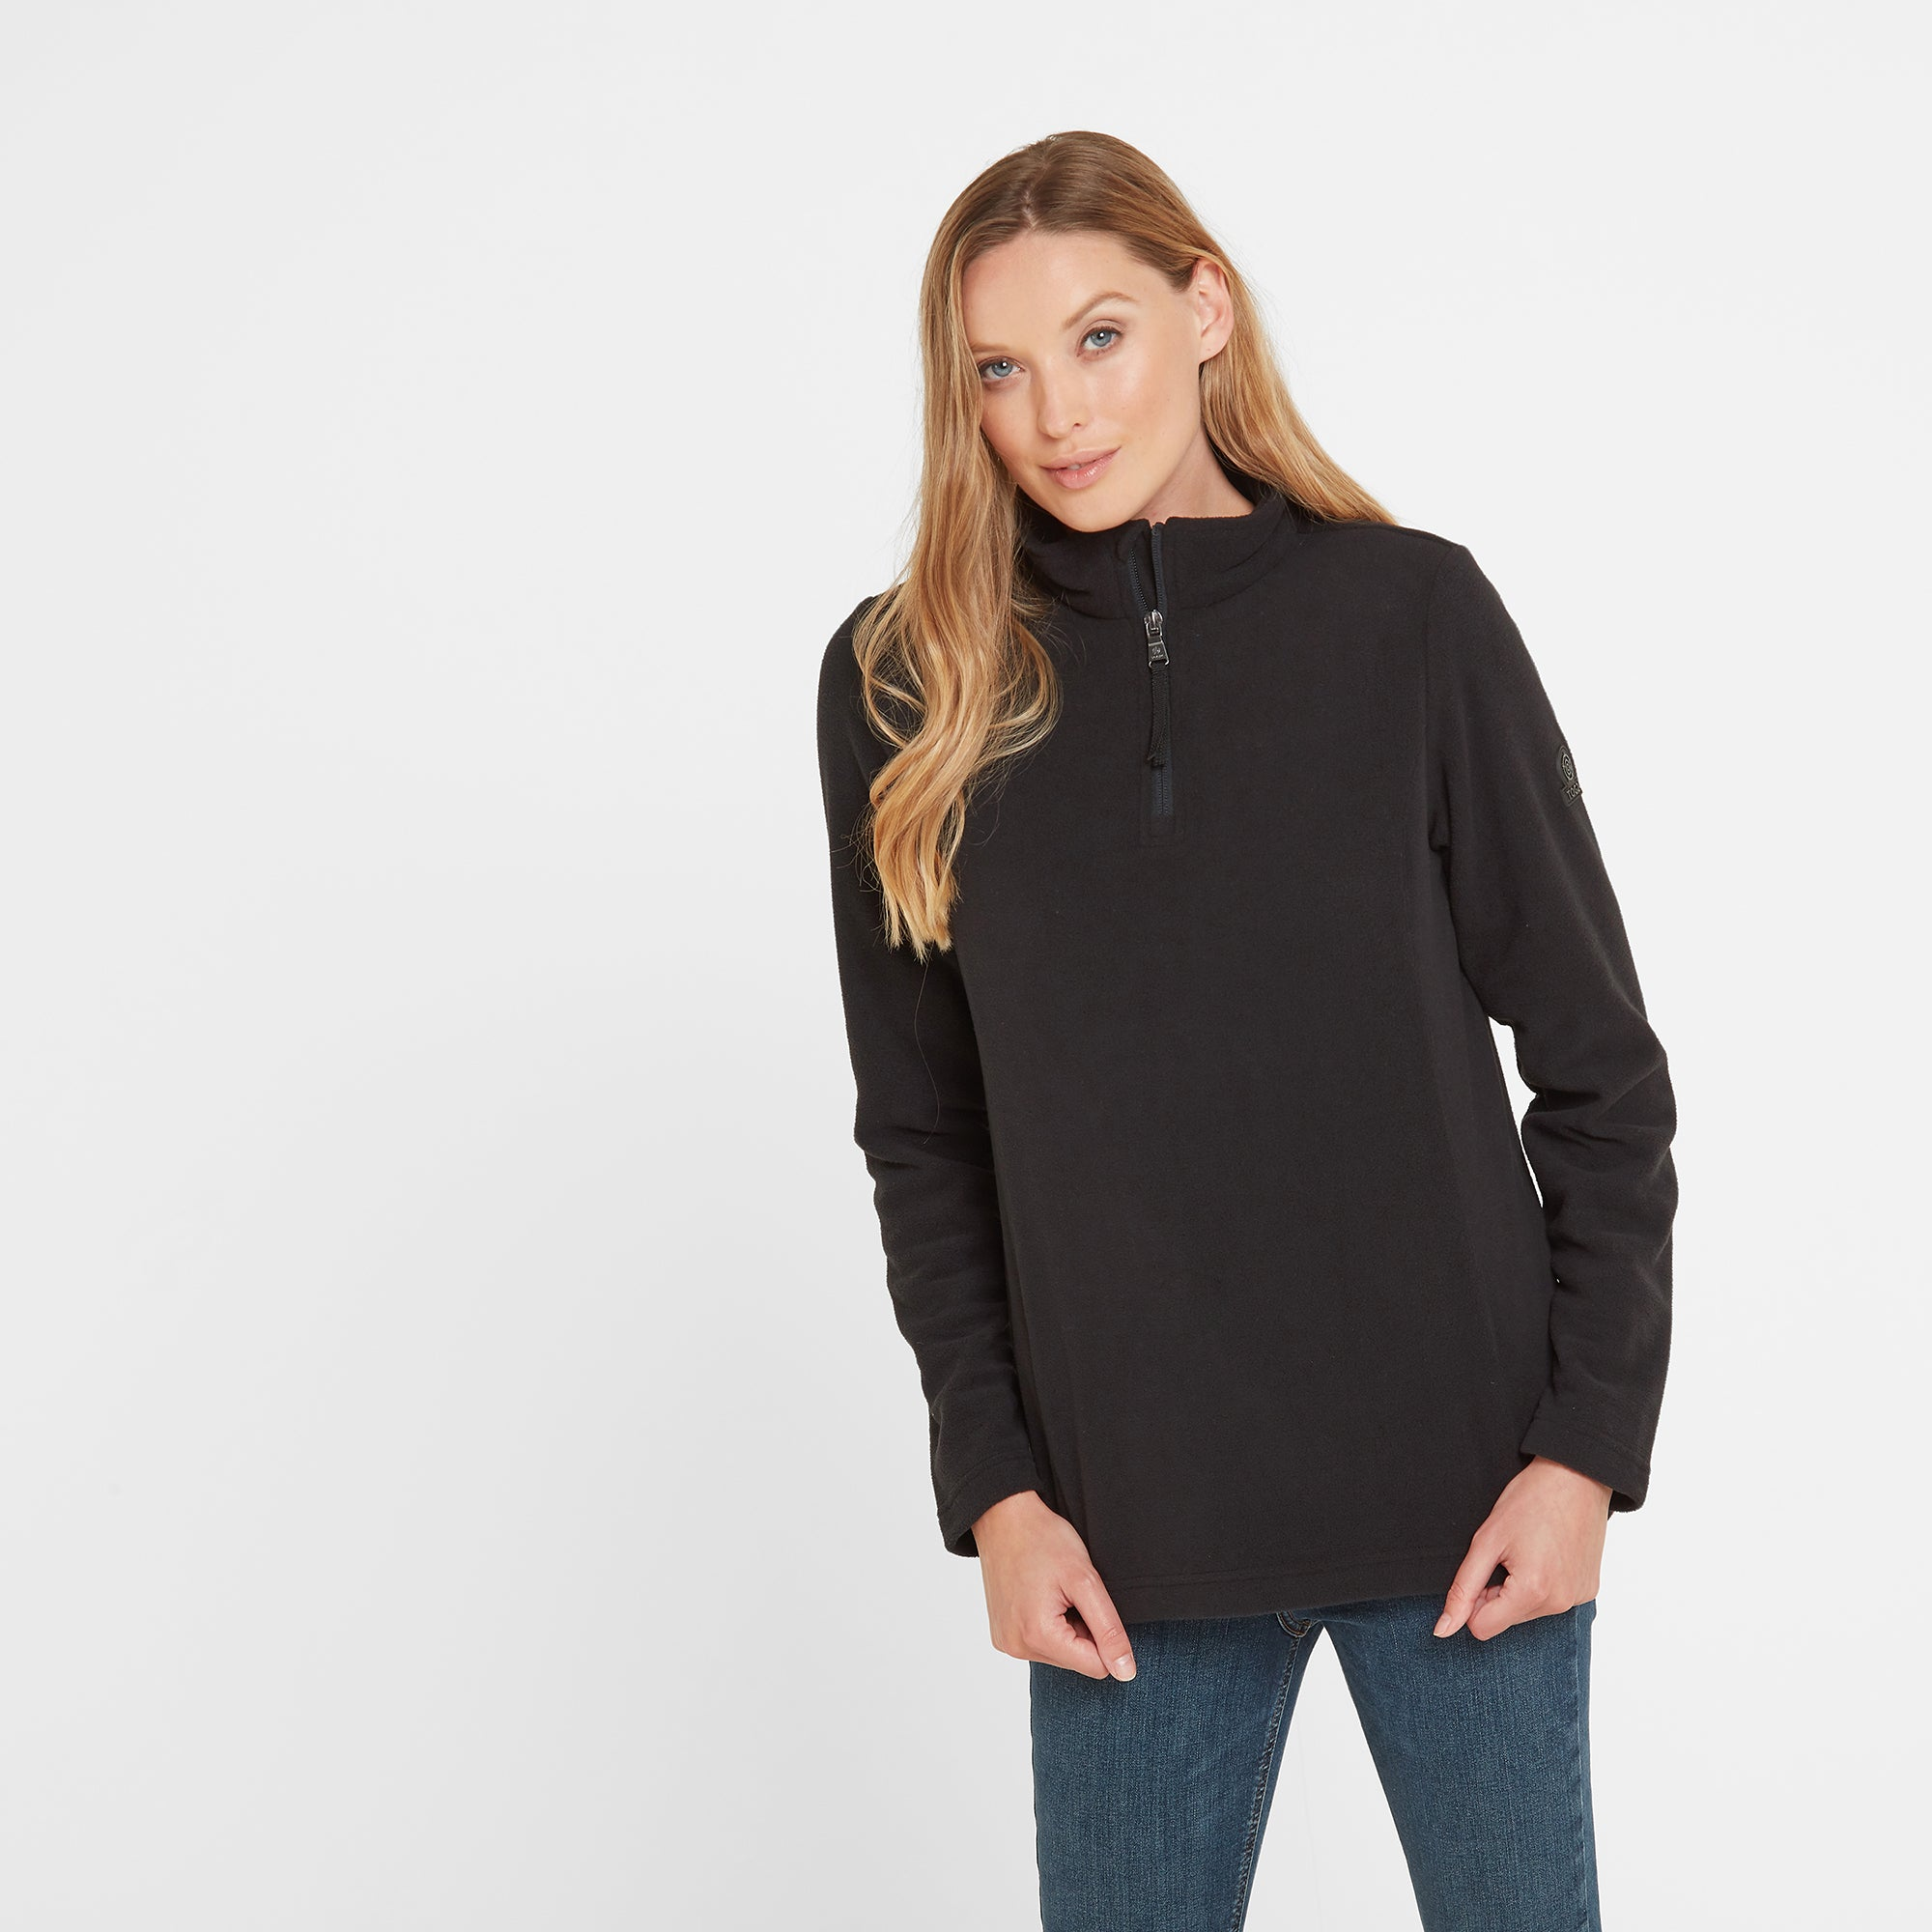 Shire Womens Fleece Zipneck - Black